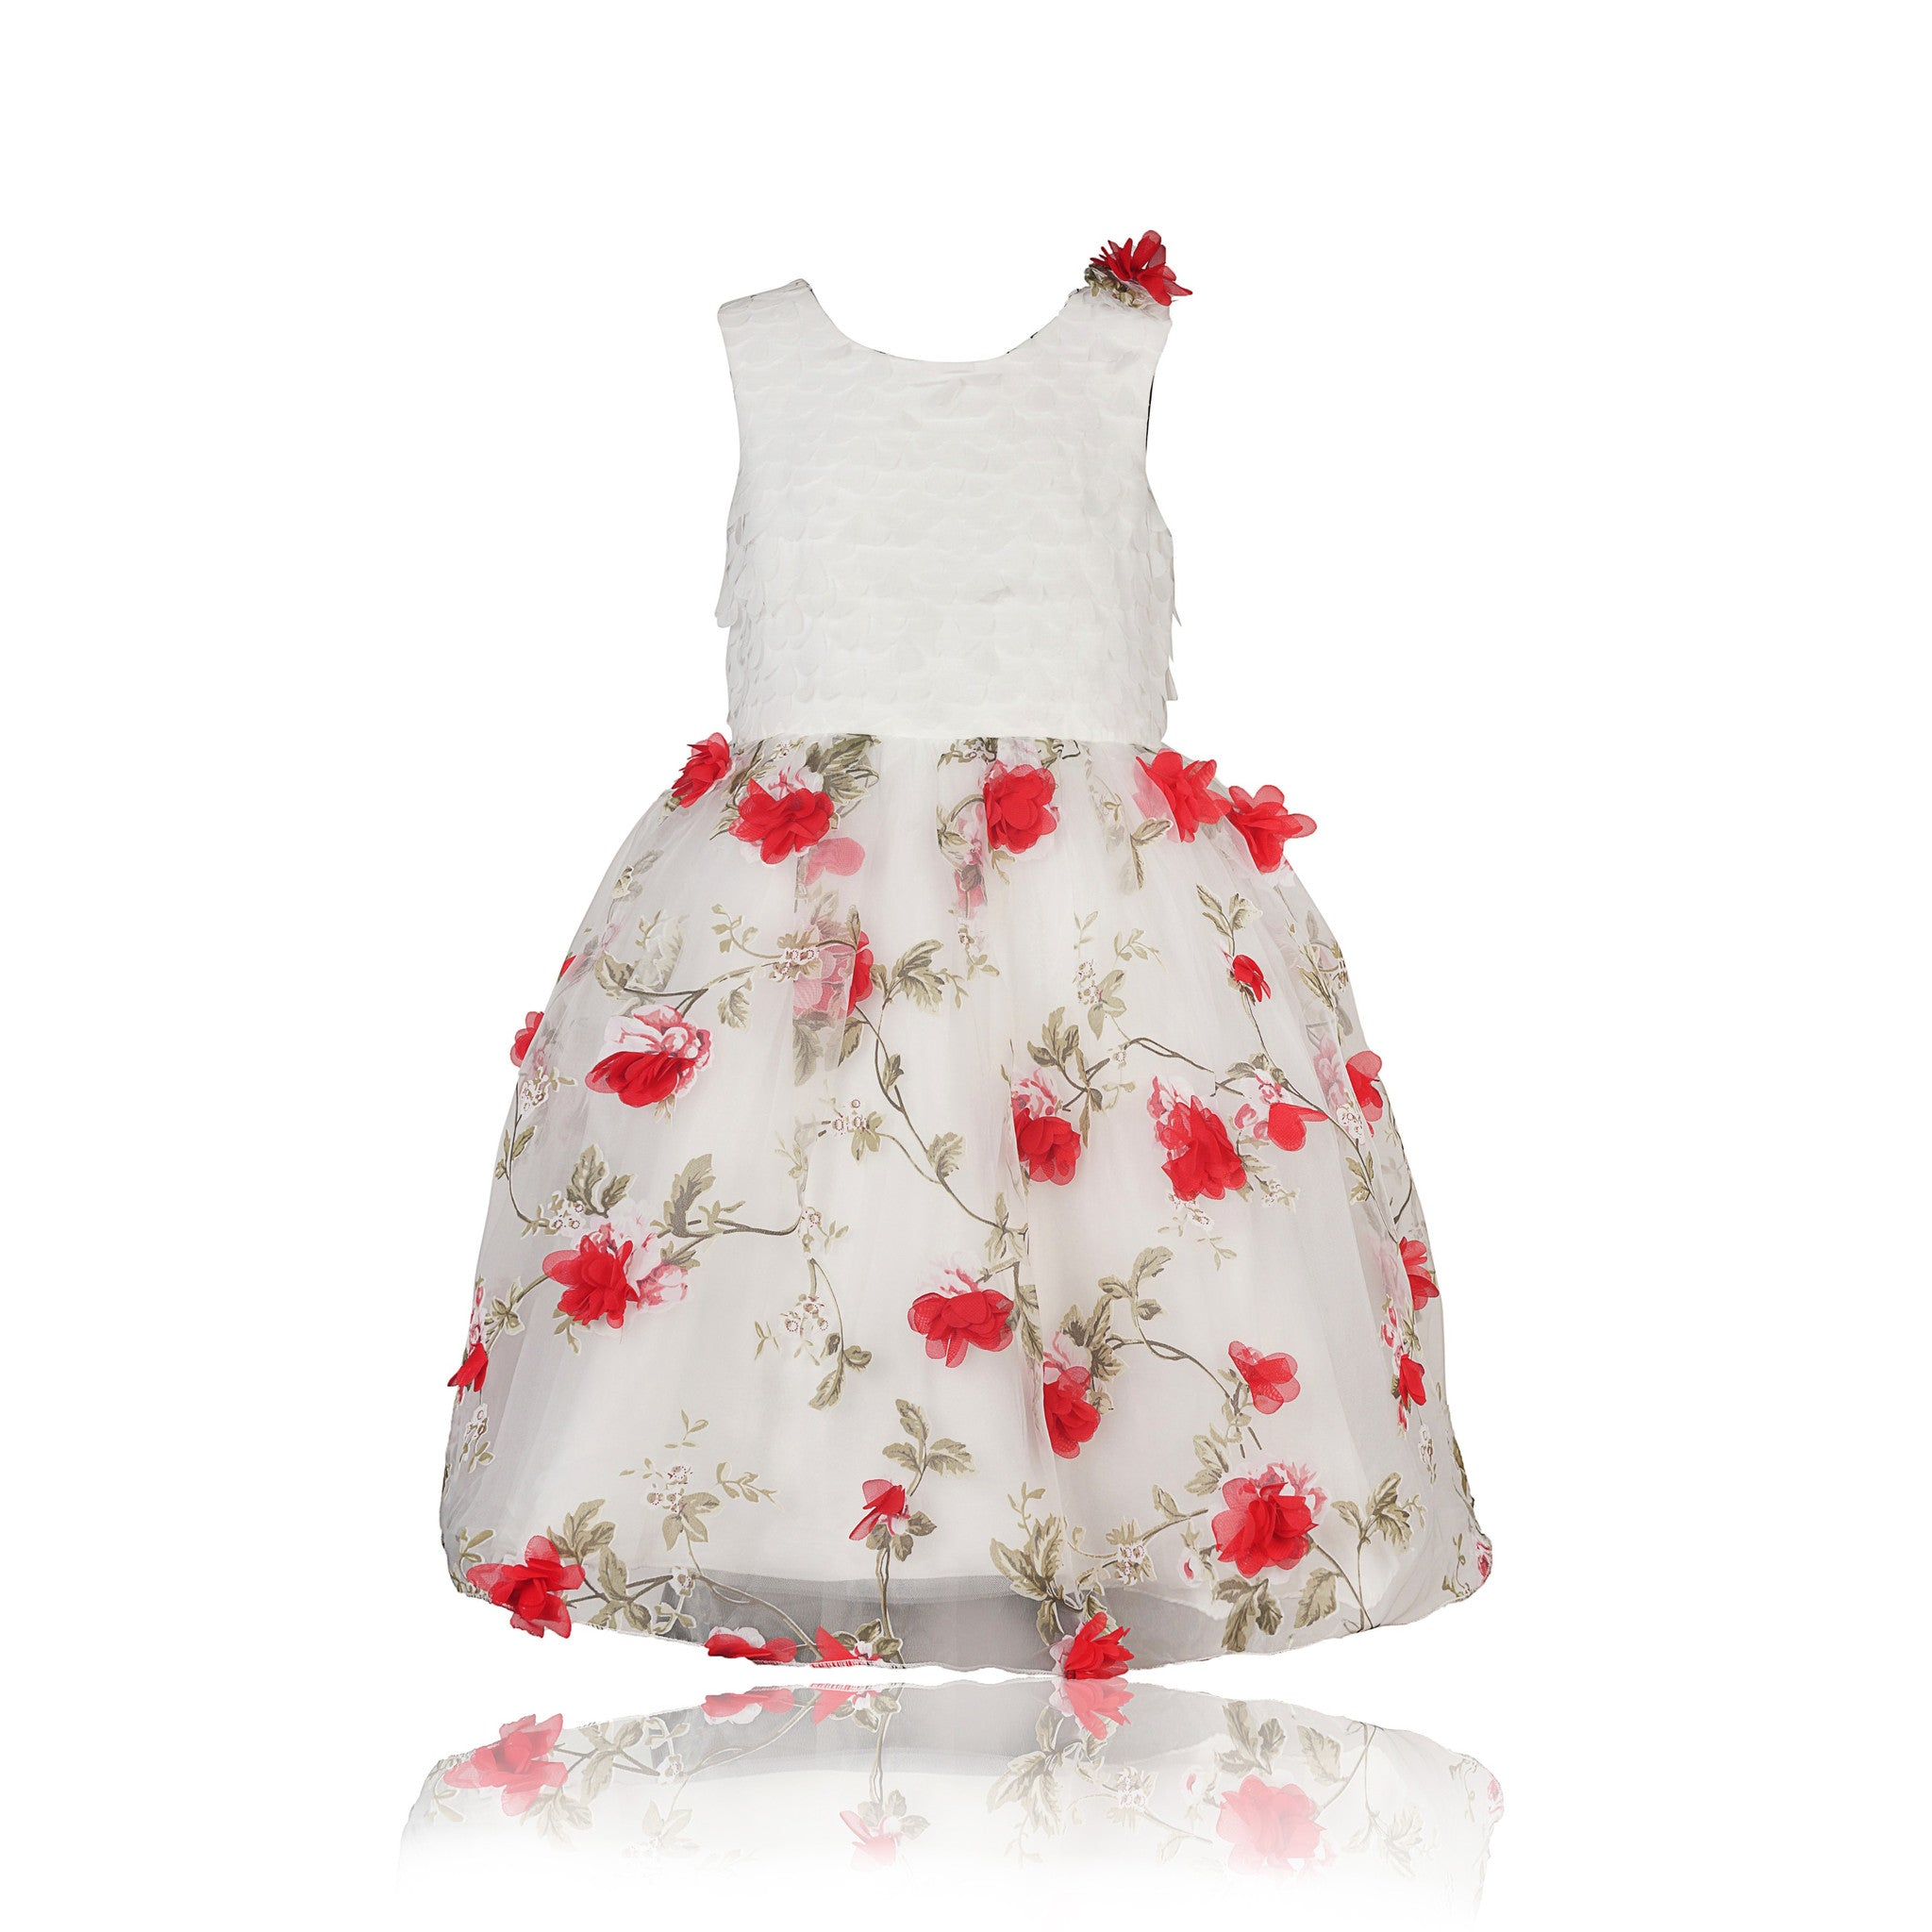 eedae9ef74427 Buy Coctail White Top And Down Red Flowers Angels Dress Online - Coctail